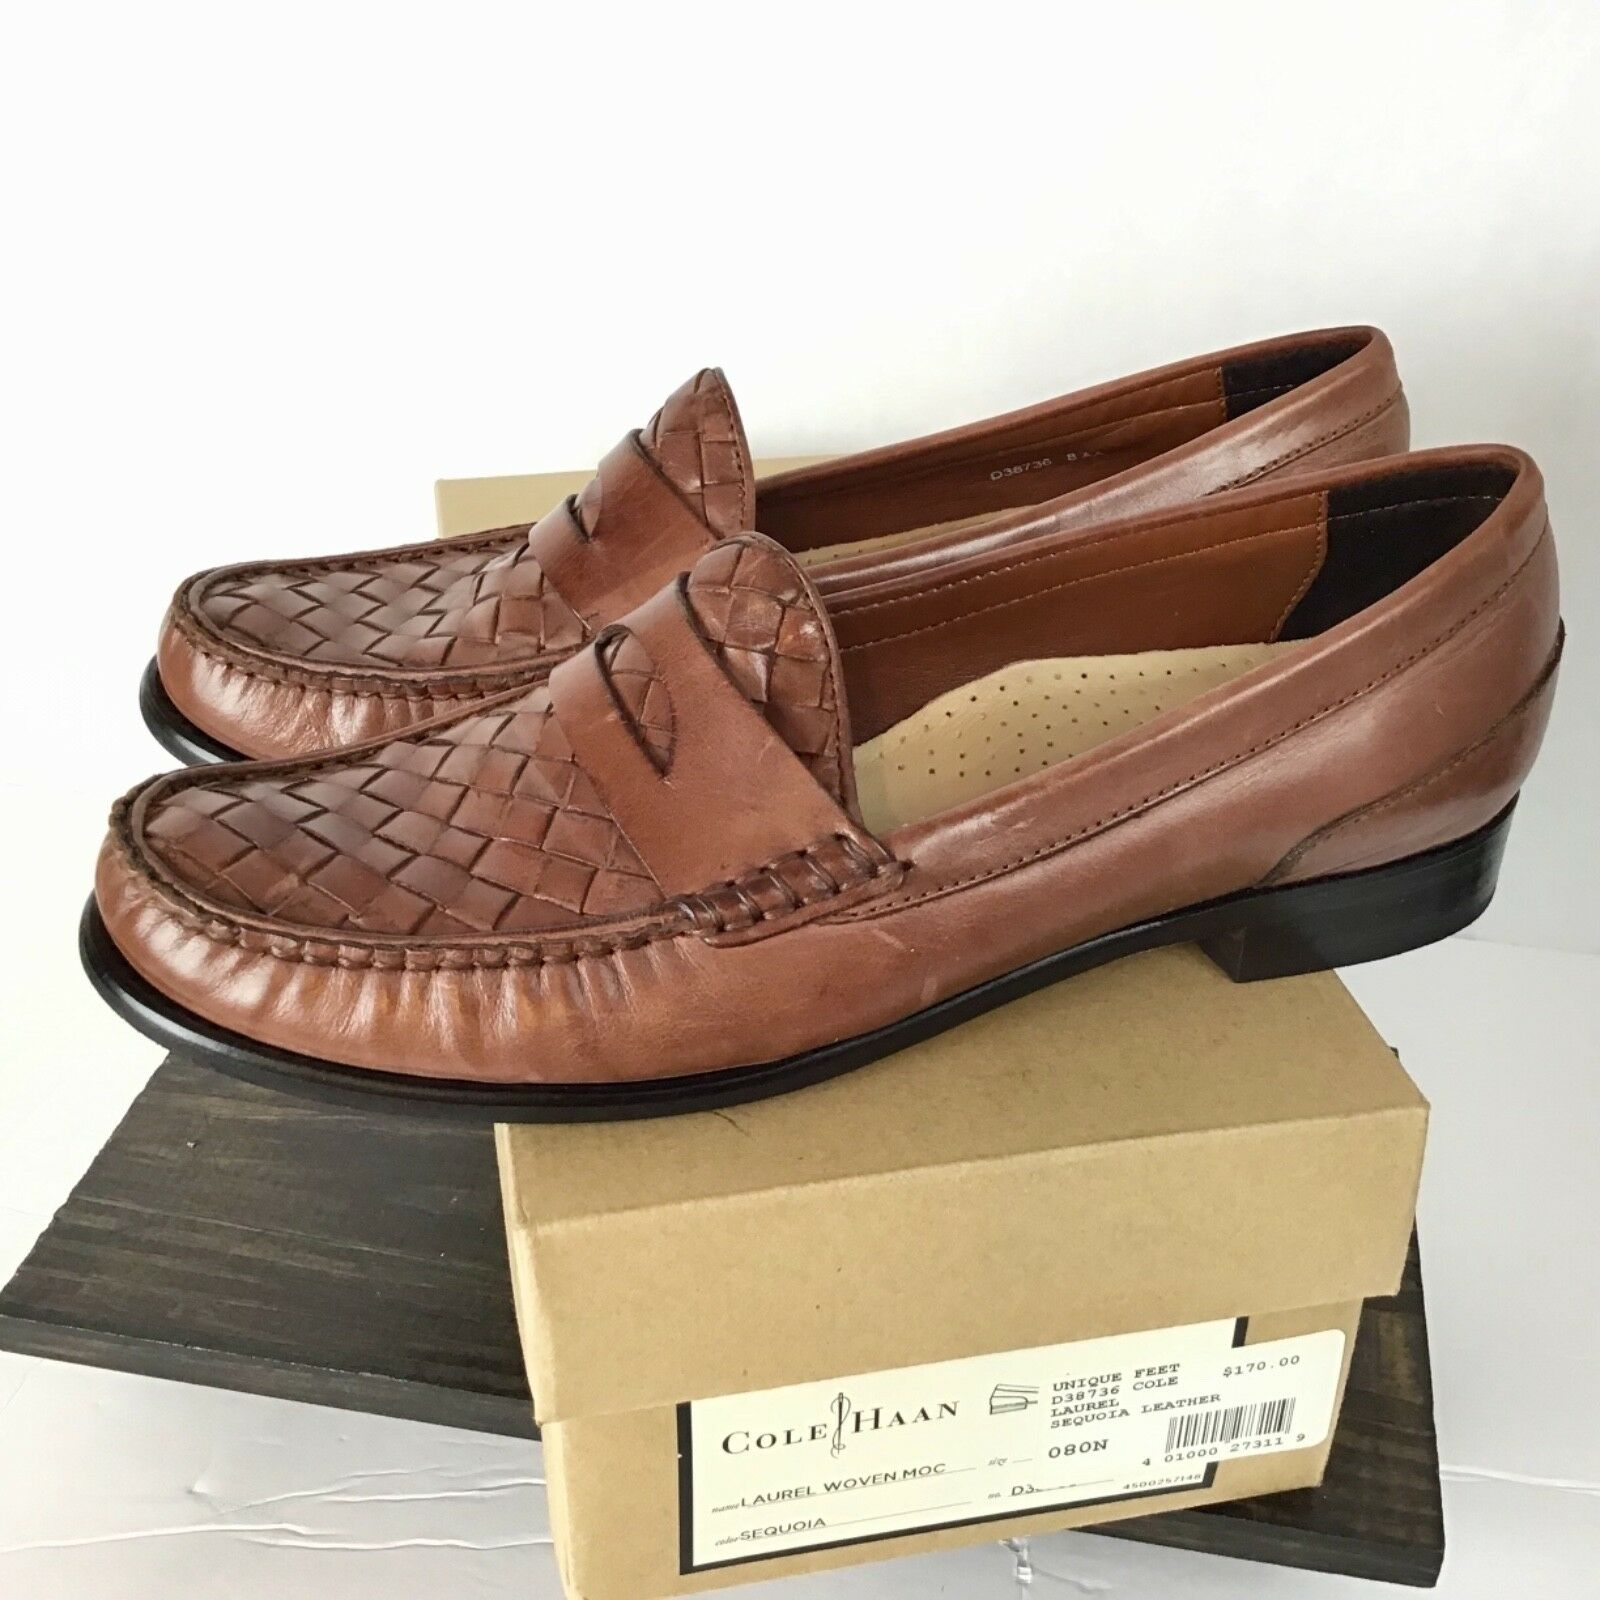 Cole Haan Womens Size 8 AA N Laurel Woven Moc Loafer shoes Brown Basket Weave